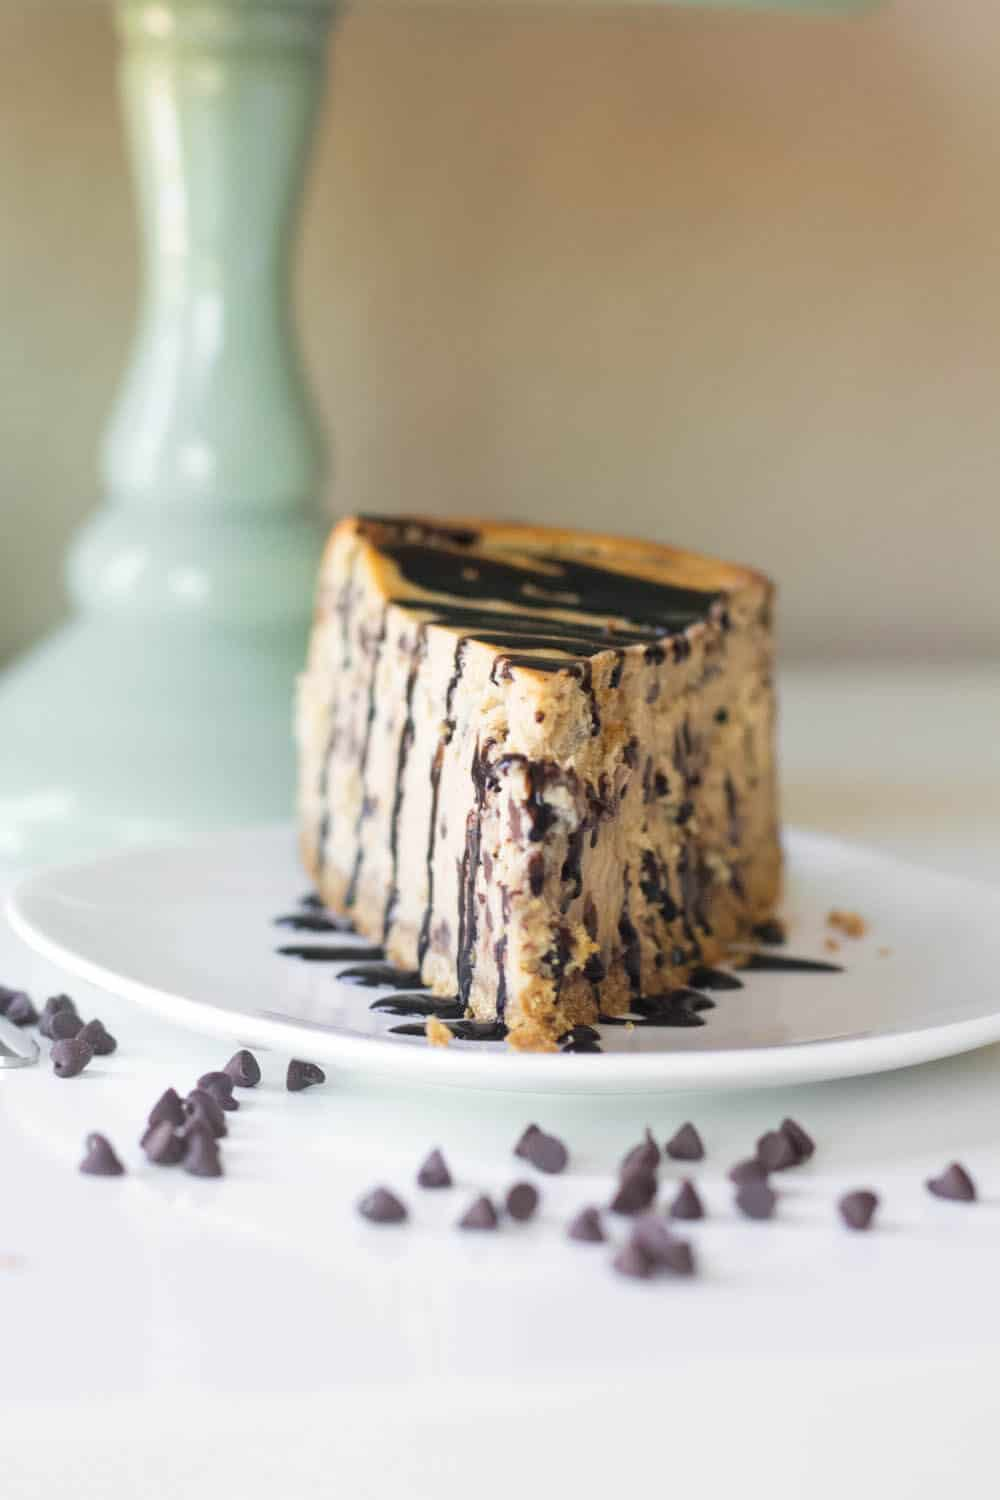 This amazing cheesecake recipe will be the best you've ever tasted! Think decadent cookie dough in a rich and creamy base. It's a definite crowd pleaser.